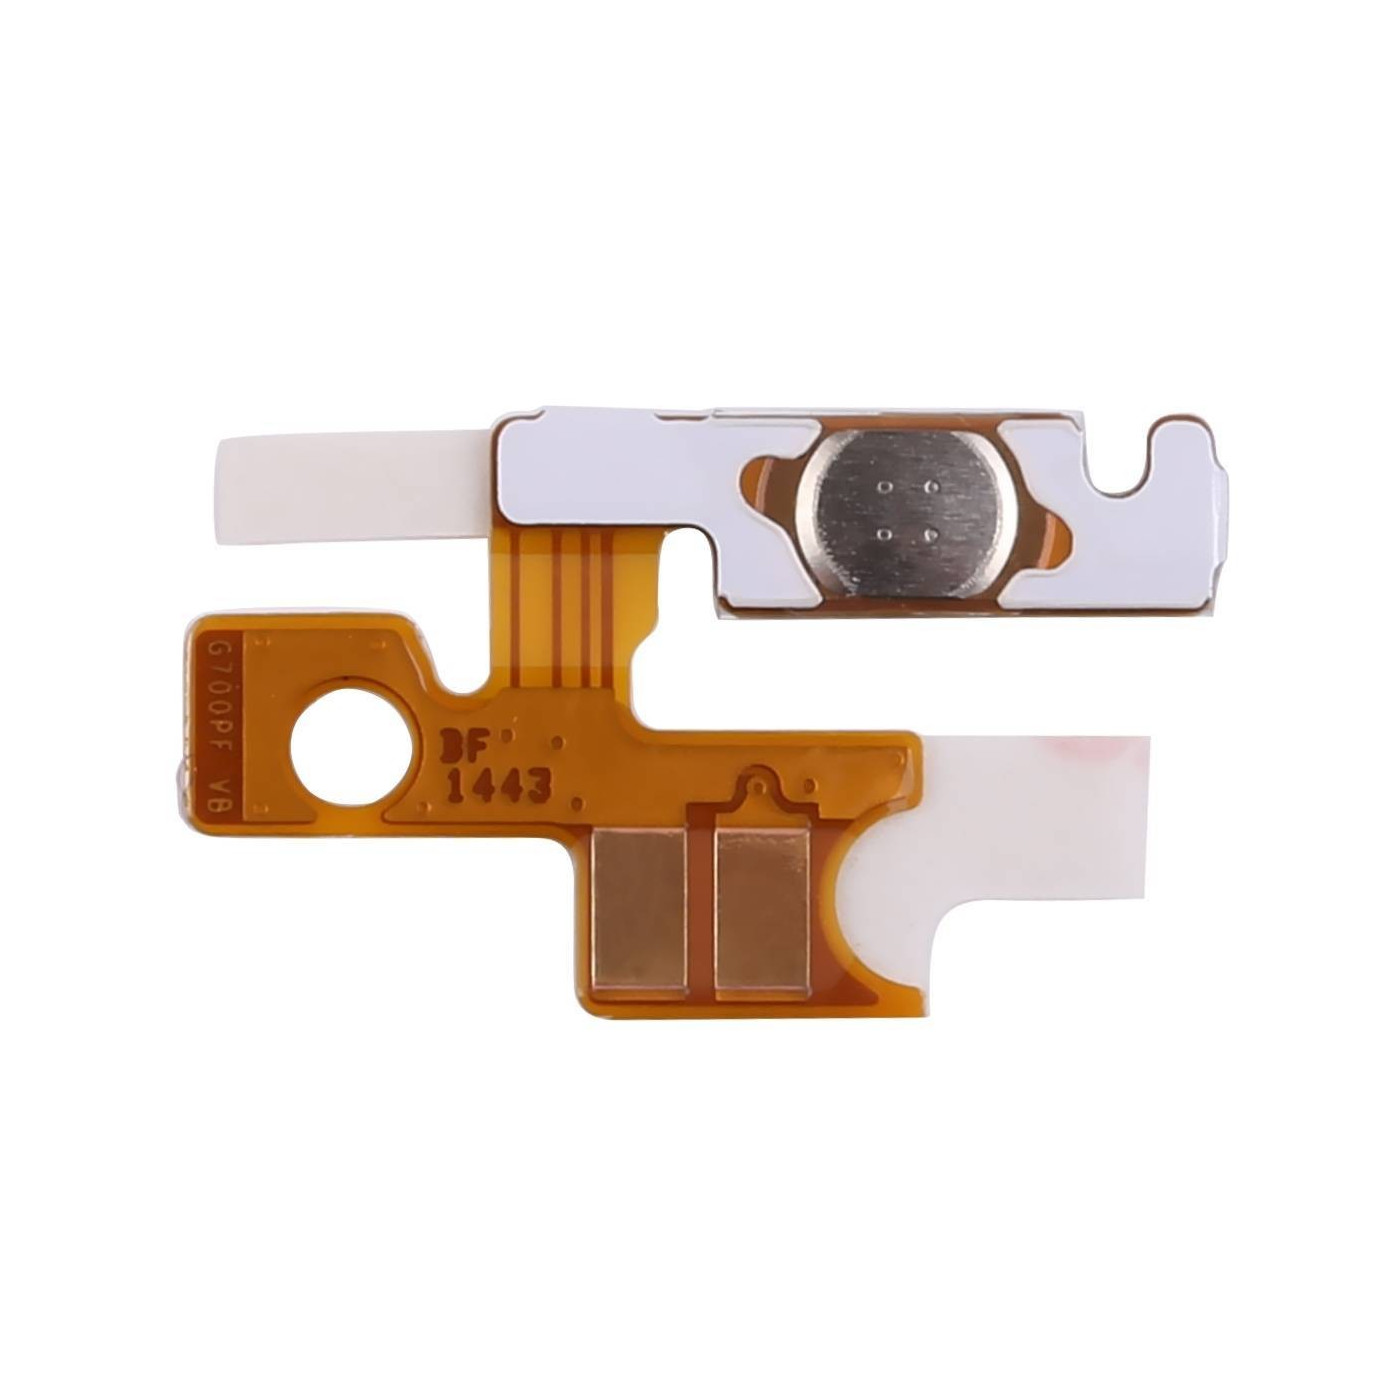 el poder flexible plano On Off botones para Huawei Ascend G700